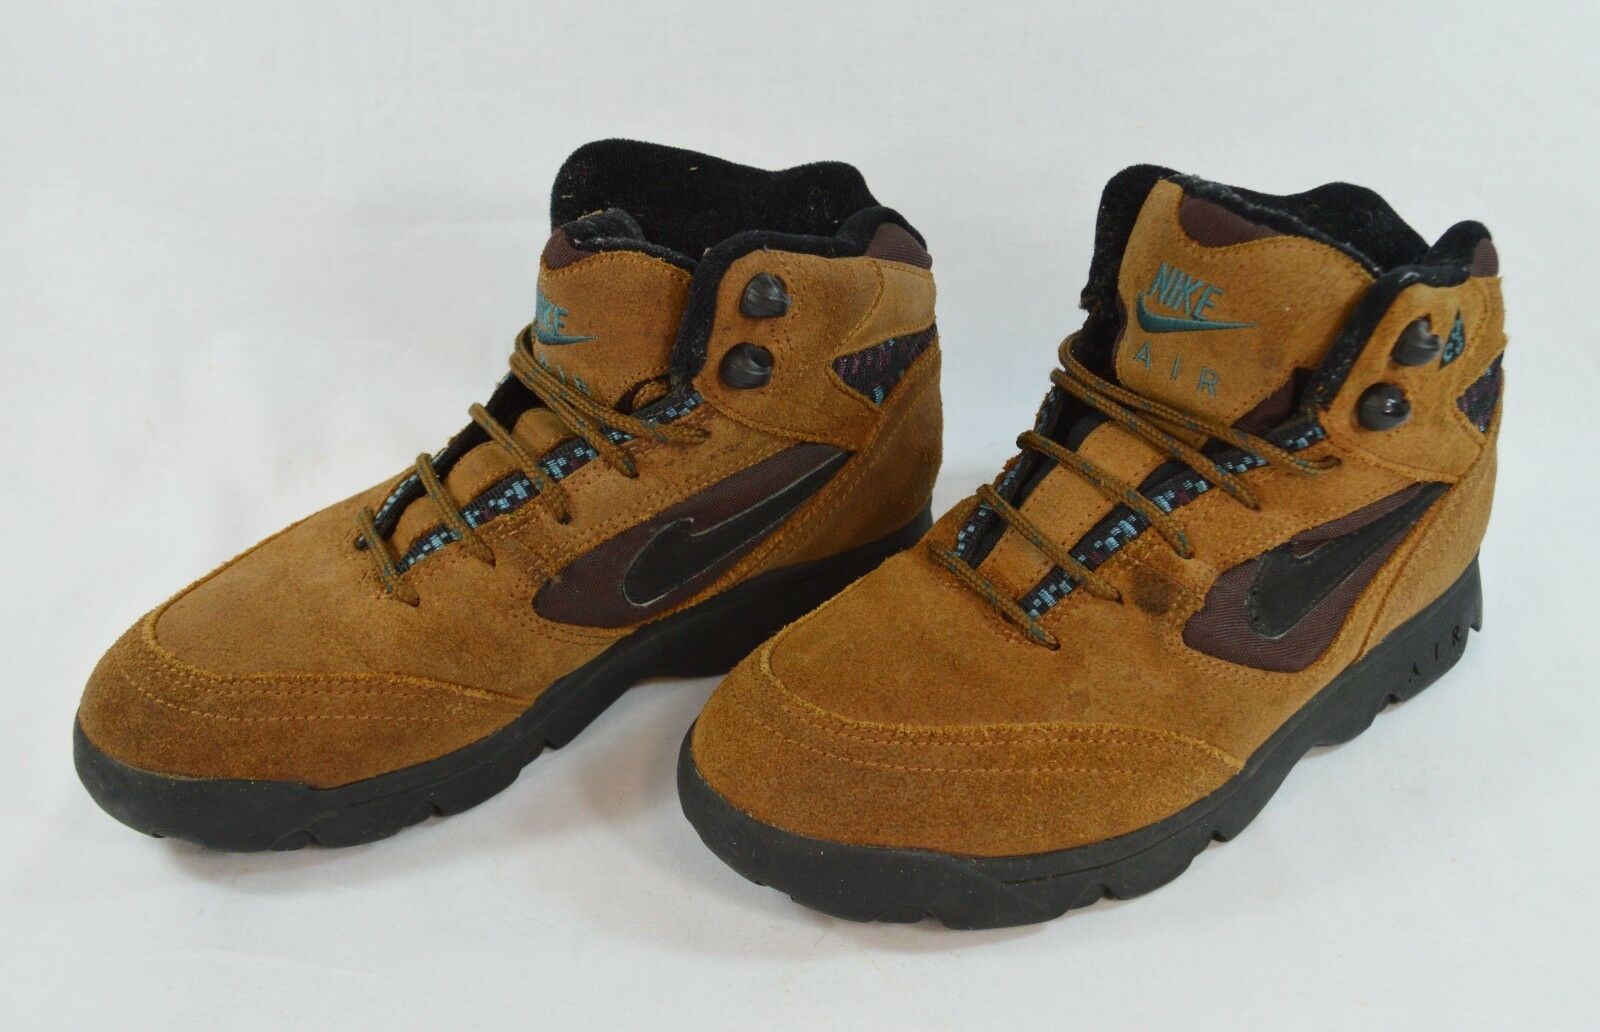 finest selection 7fa28 ee208 Vintage Nike Air ACG Hiking Boots Boots Boots Brown Leather Mens 7 Womens 8  950406-